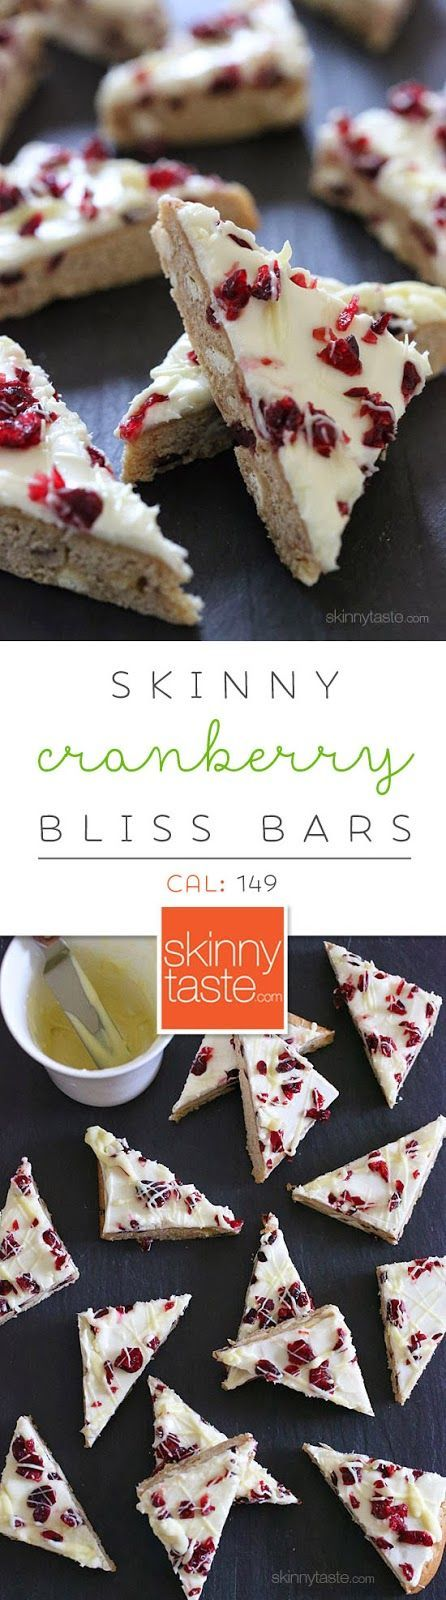 Skinny Cranberry Bliss Bars inspired by Starbucks yummy seasonal favorite!!! Here's hoping this comes close to the original and let's me indulge this Christmas season.